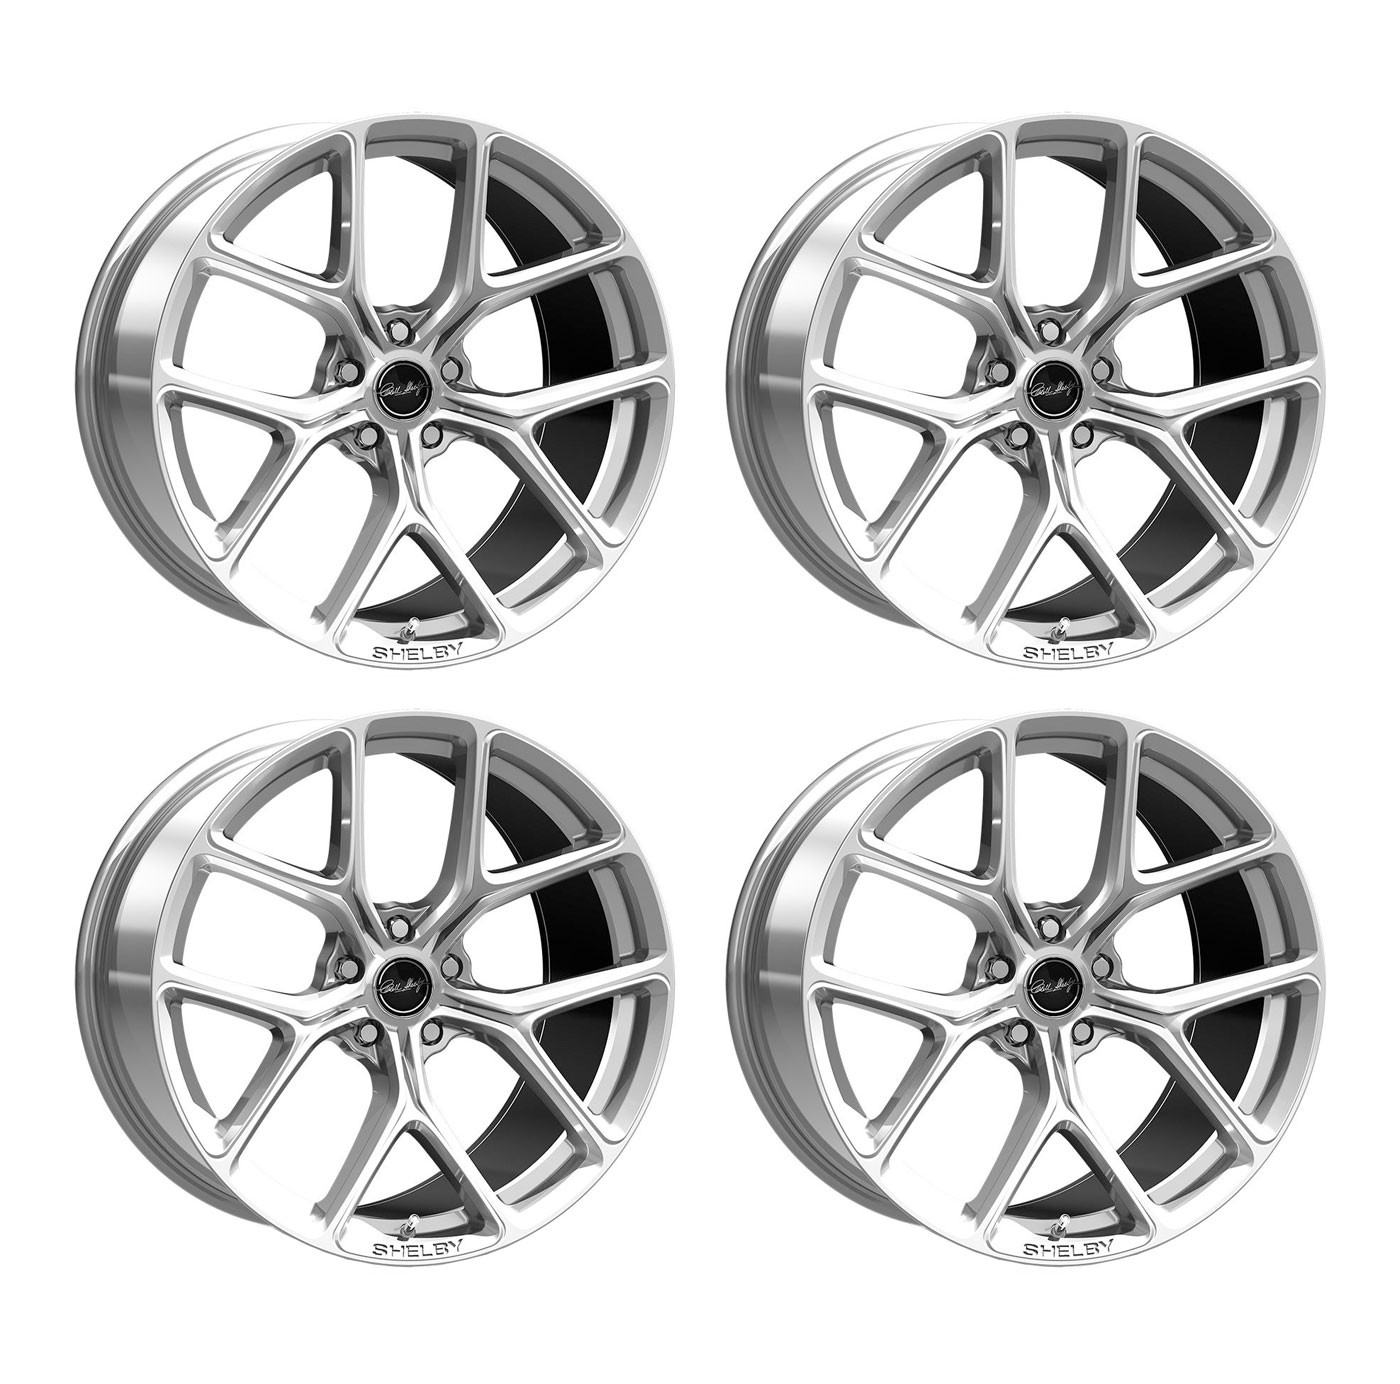 """2015-2020 Ford Mustang Shelby Staggered Bright Silver Wheels 20"""" x 11"""" & 9.5"""""""